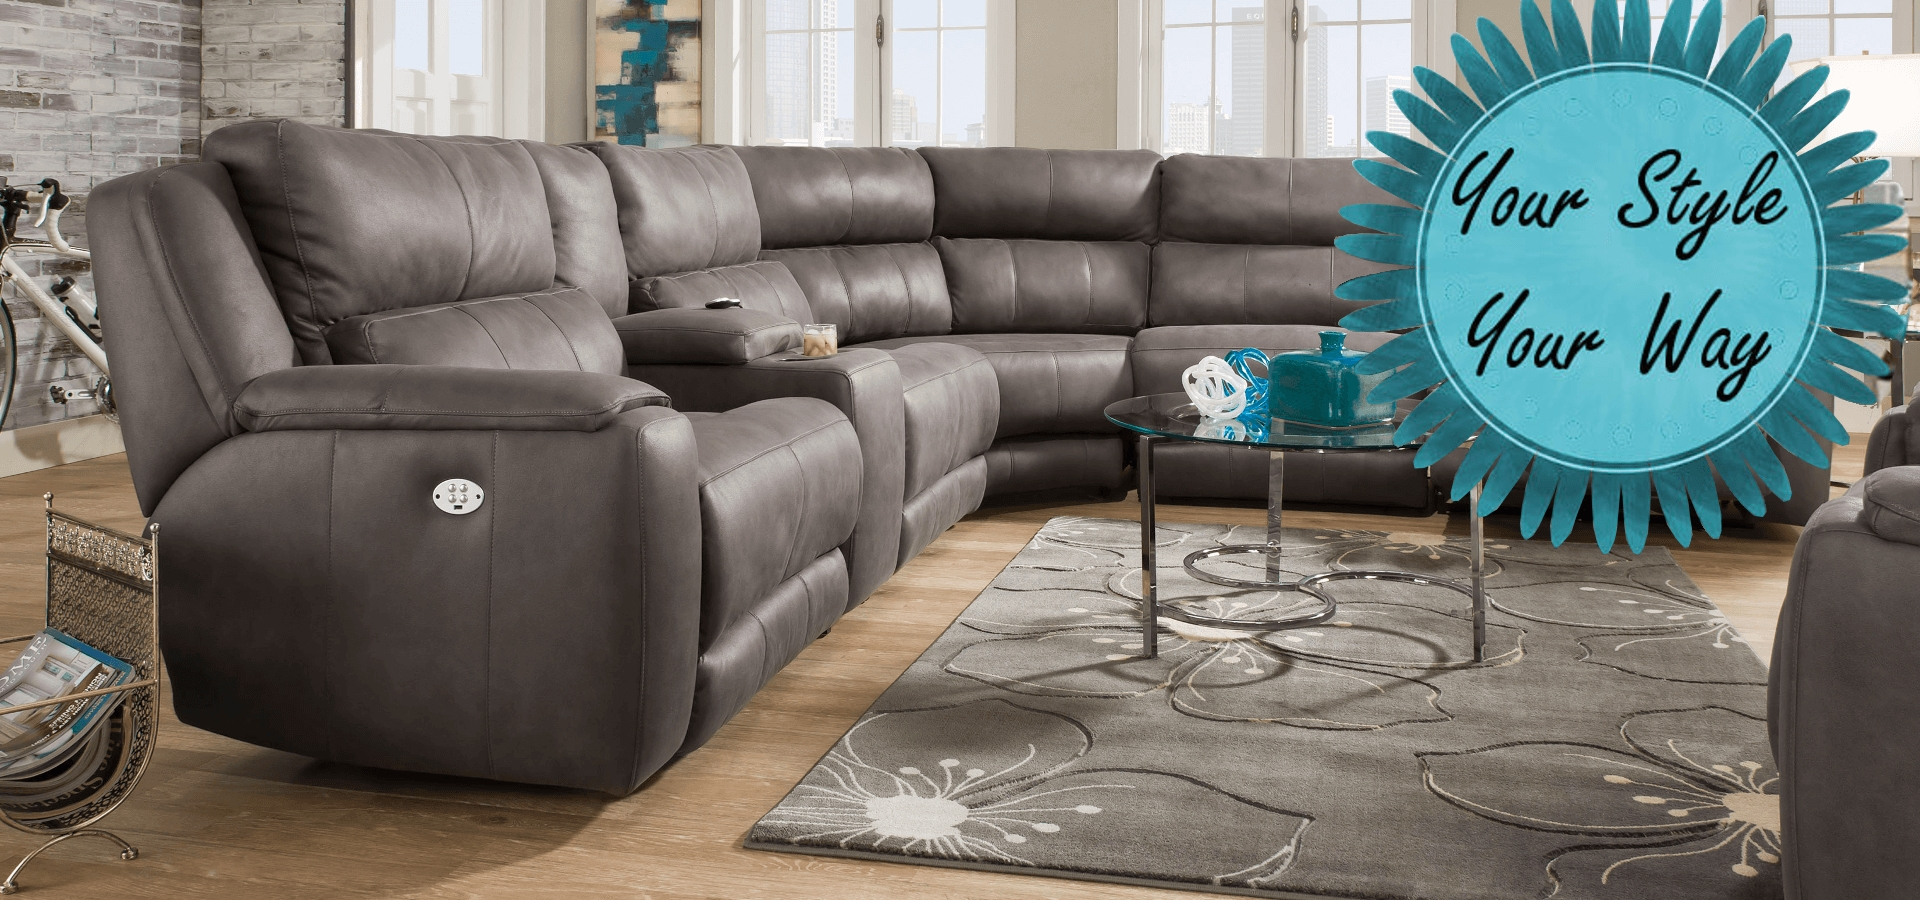 American-Made Motion Furniture & Reclining Living Room Sets pertaining to Travis Cognac Leather 6 Piece Power Reclining Sectionals With Power Headrest & Usb (Image 4 of 30)